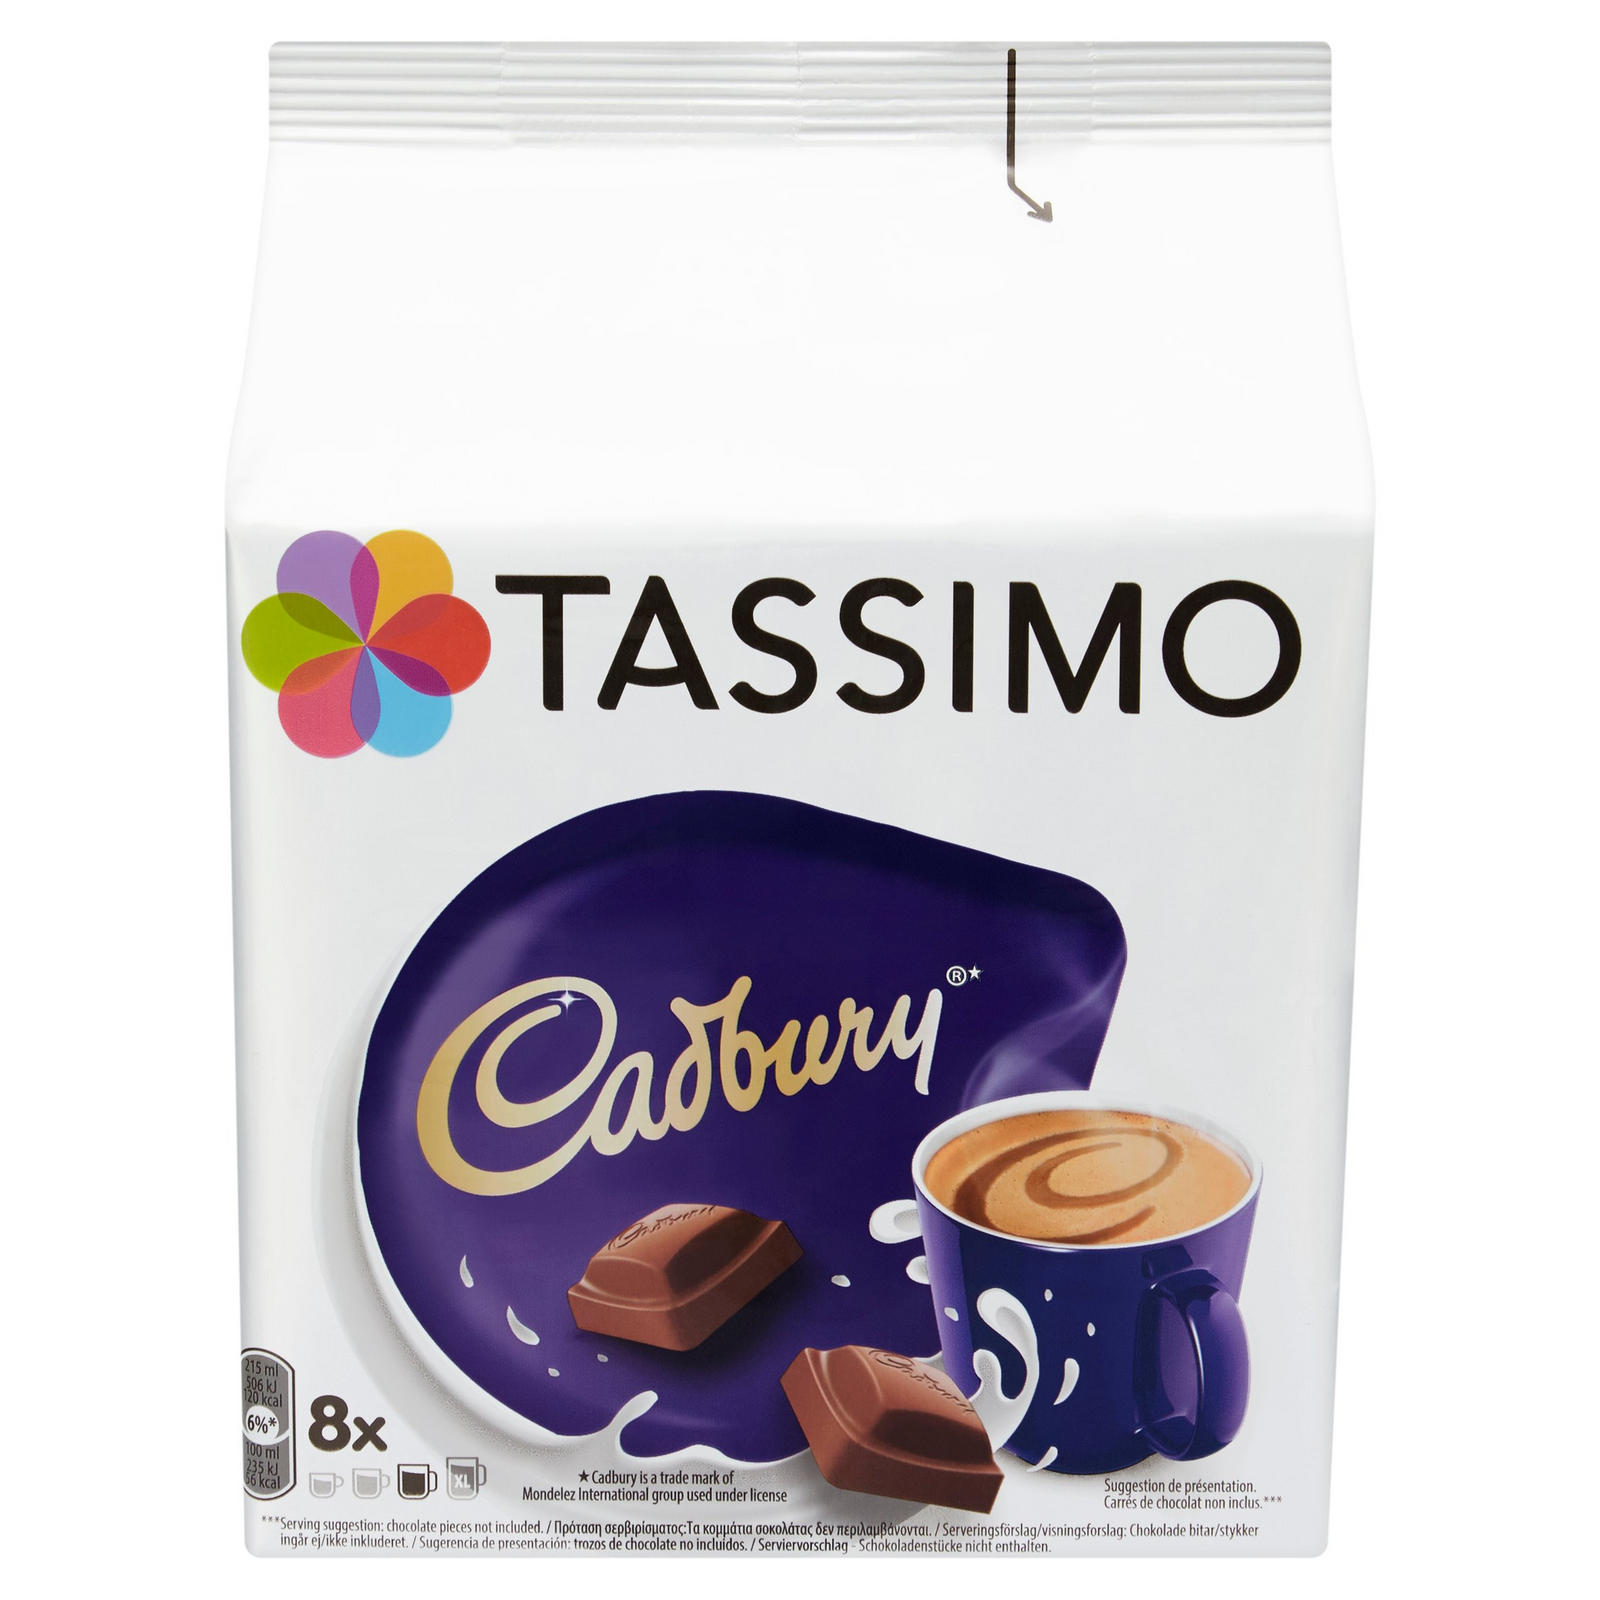 Tassimo Cadbury Hot Chocolate Pods X8 Hot Chocolate